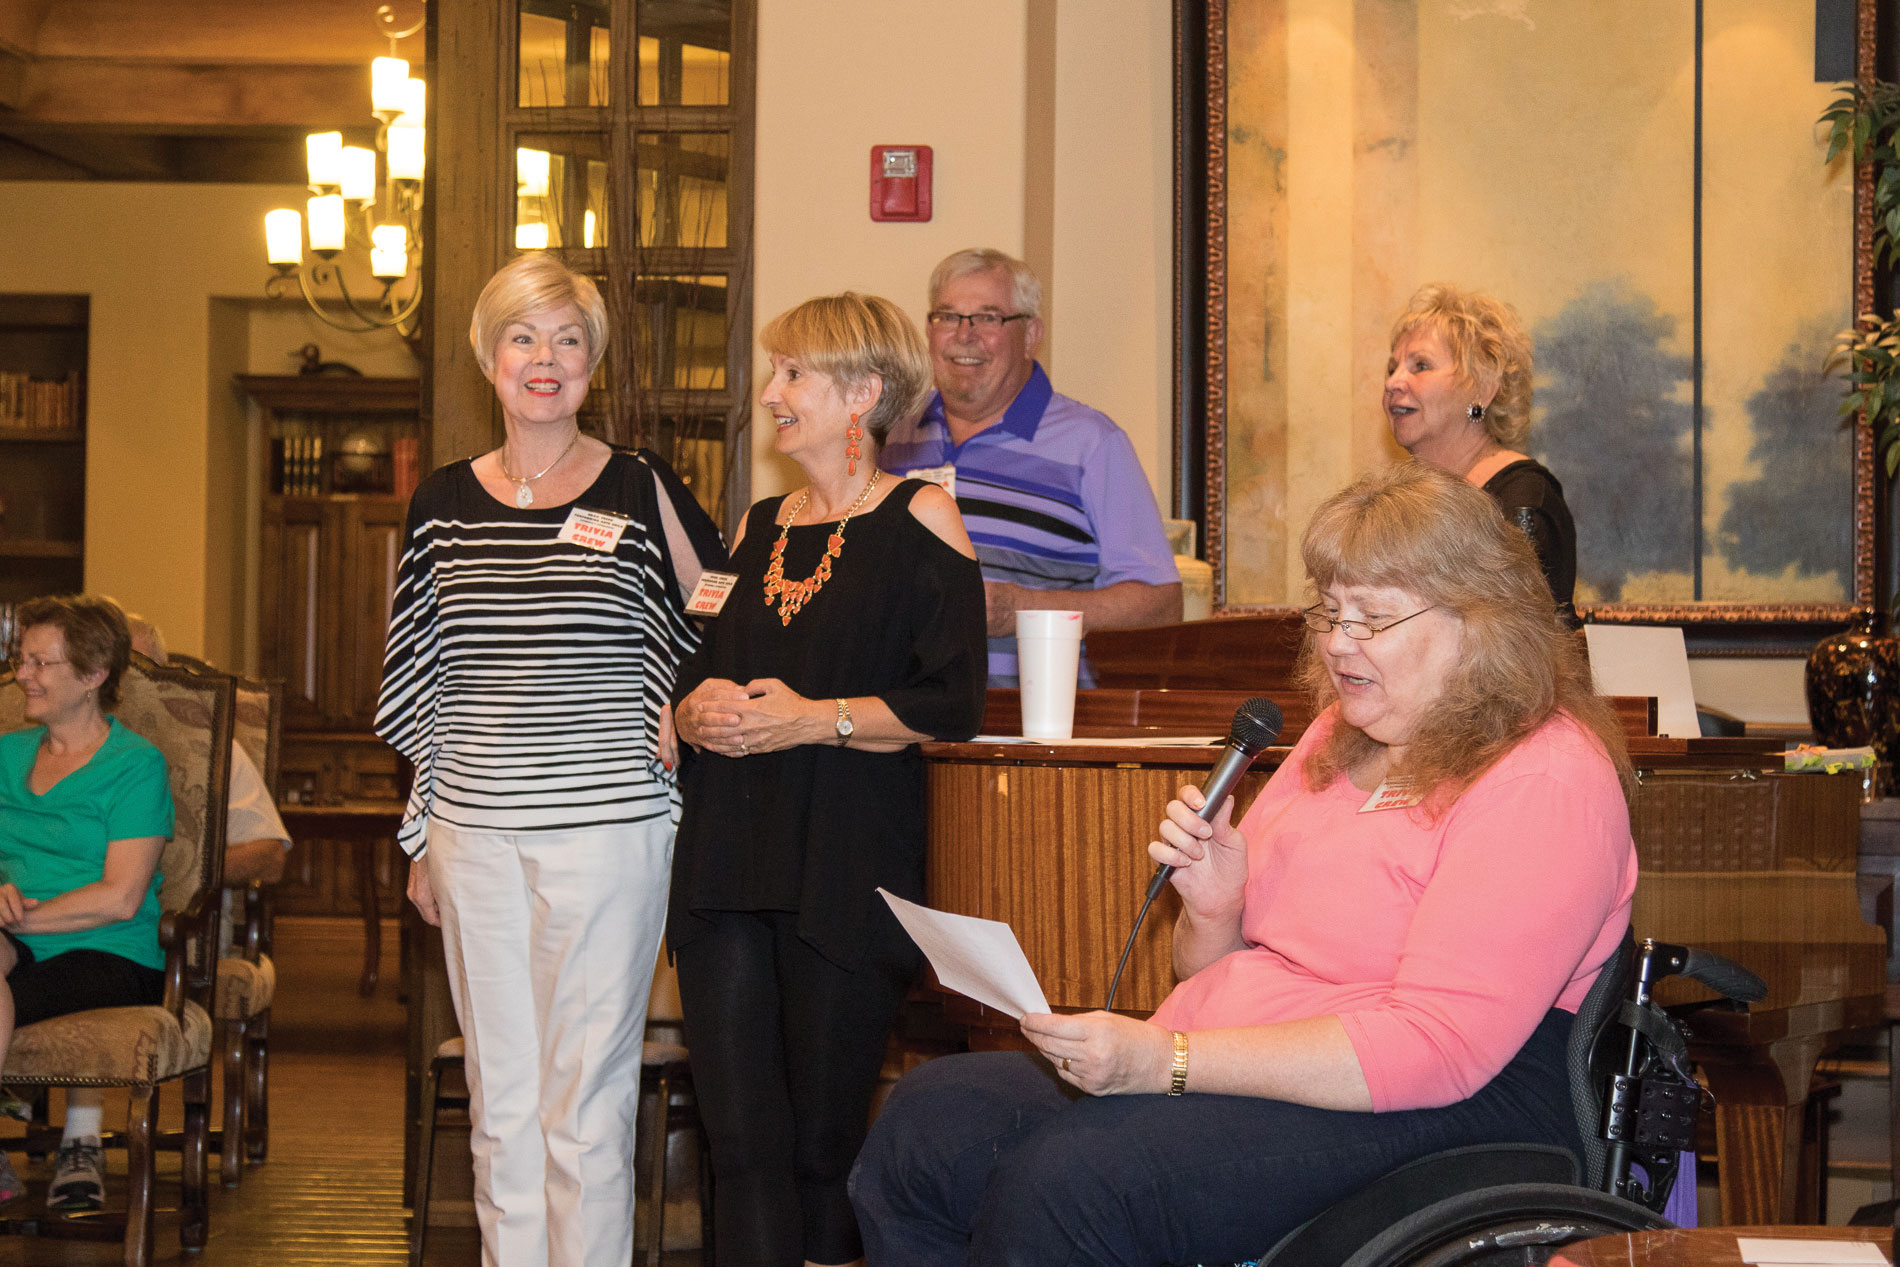 Trivia Crew, left to right: Joyce Walton, Pam Campbell, Bruce Ranney, Cyndy Gierada, Donna Smith (with microphone); photo by Jeff Krueger